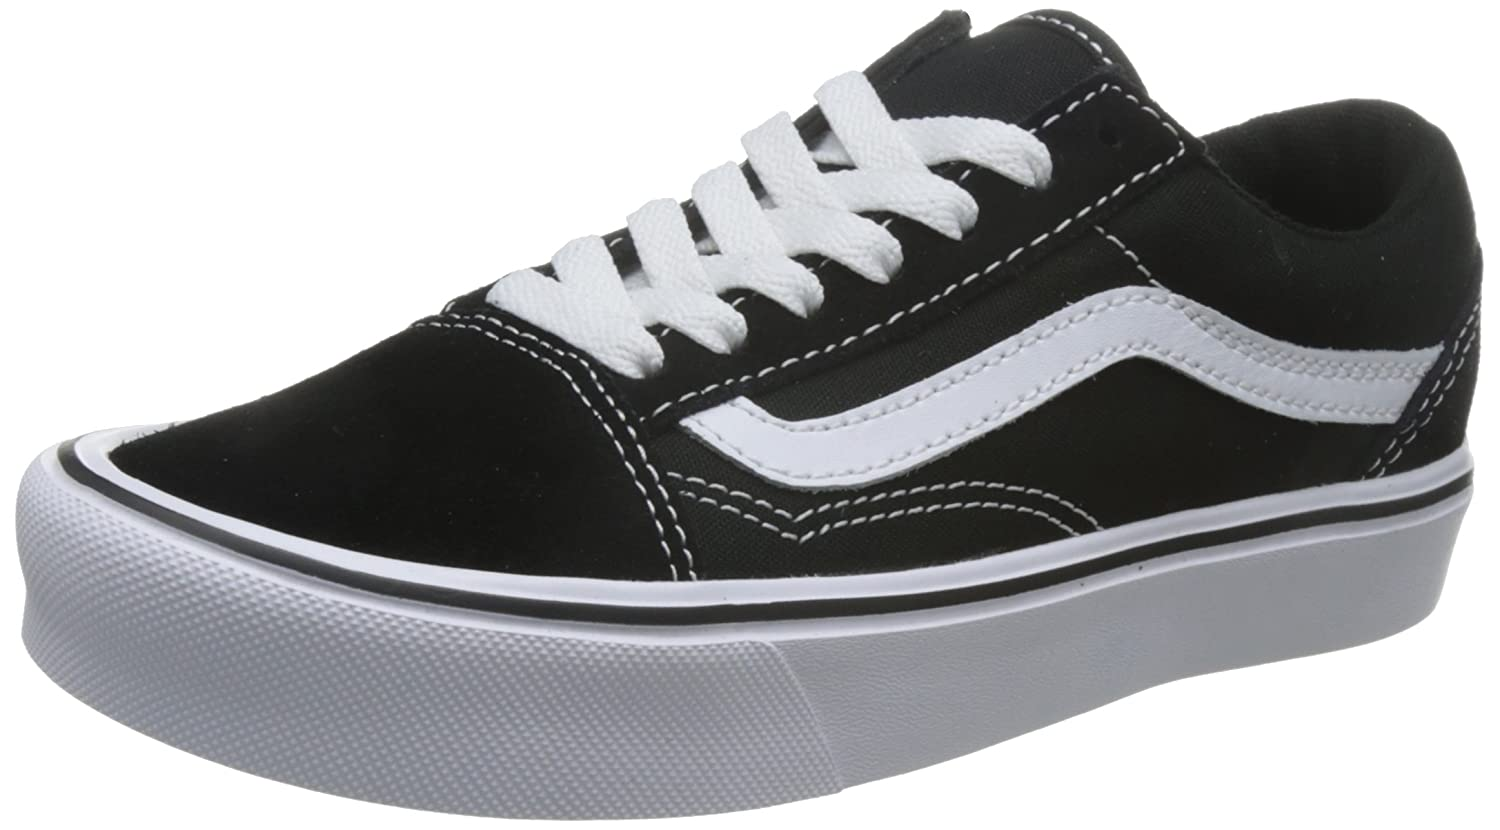 Vans Unisex Old Skool Lite (Suede/Canvas) D(M) Skate Shoe B01GTOBTBO 7 D(M) (Suede/Canvas) US|Black/White 14b77b